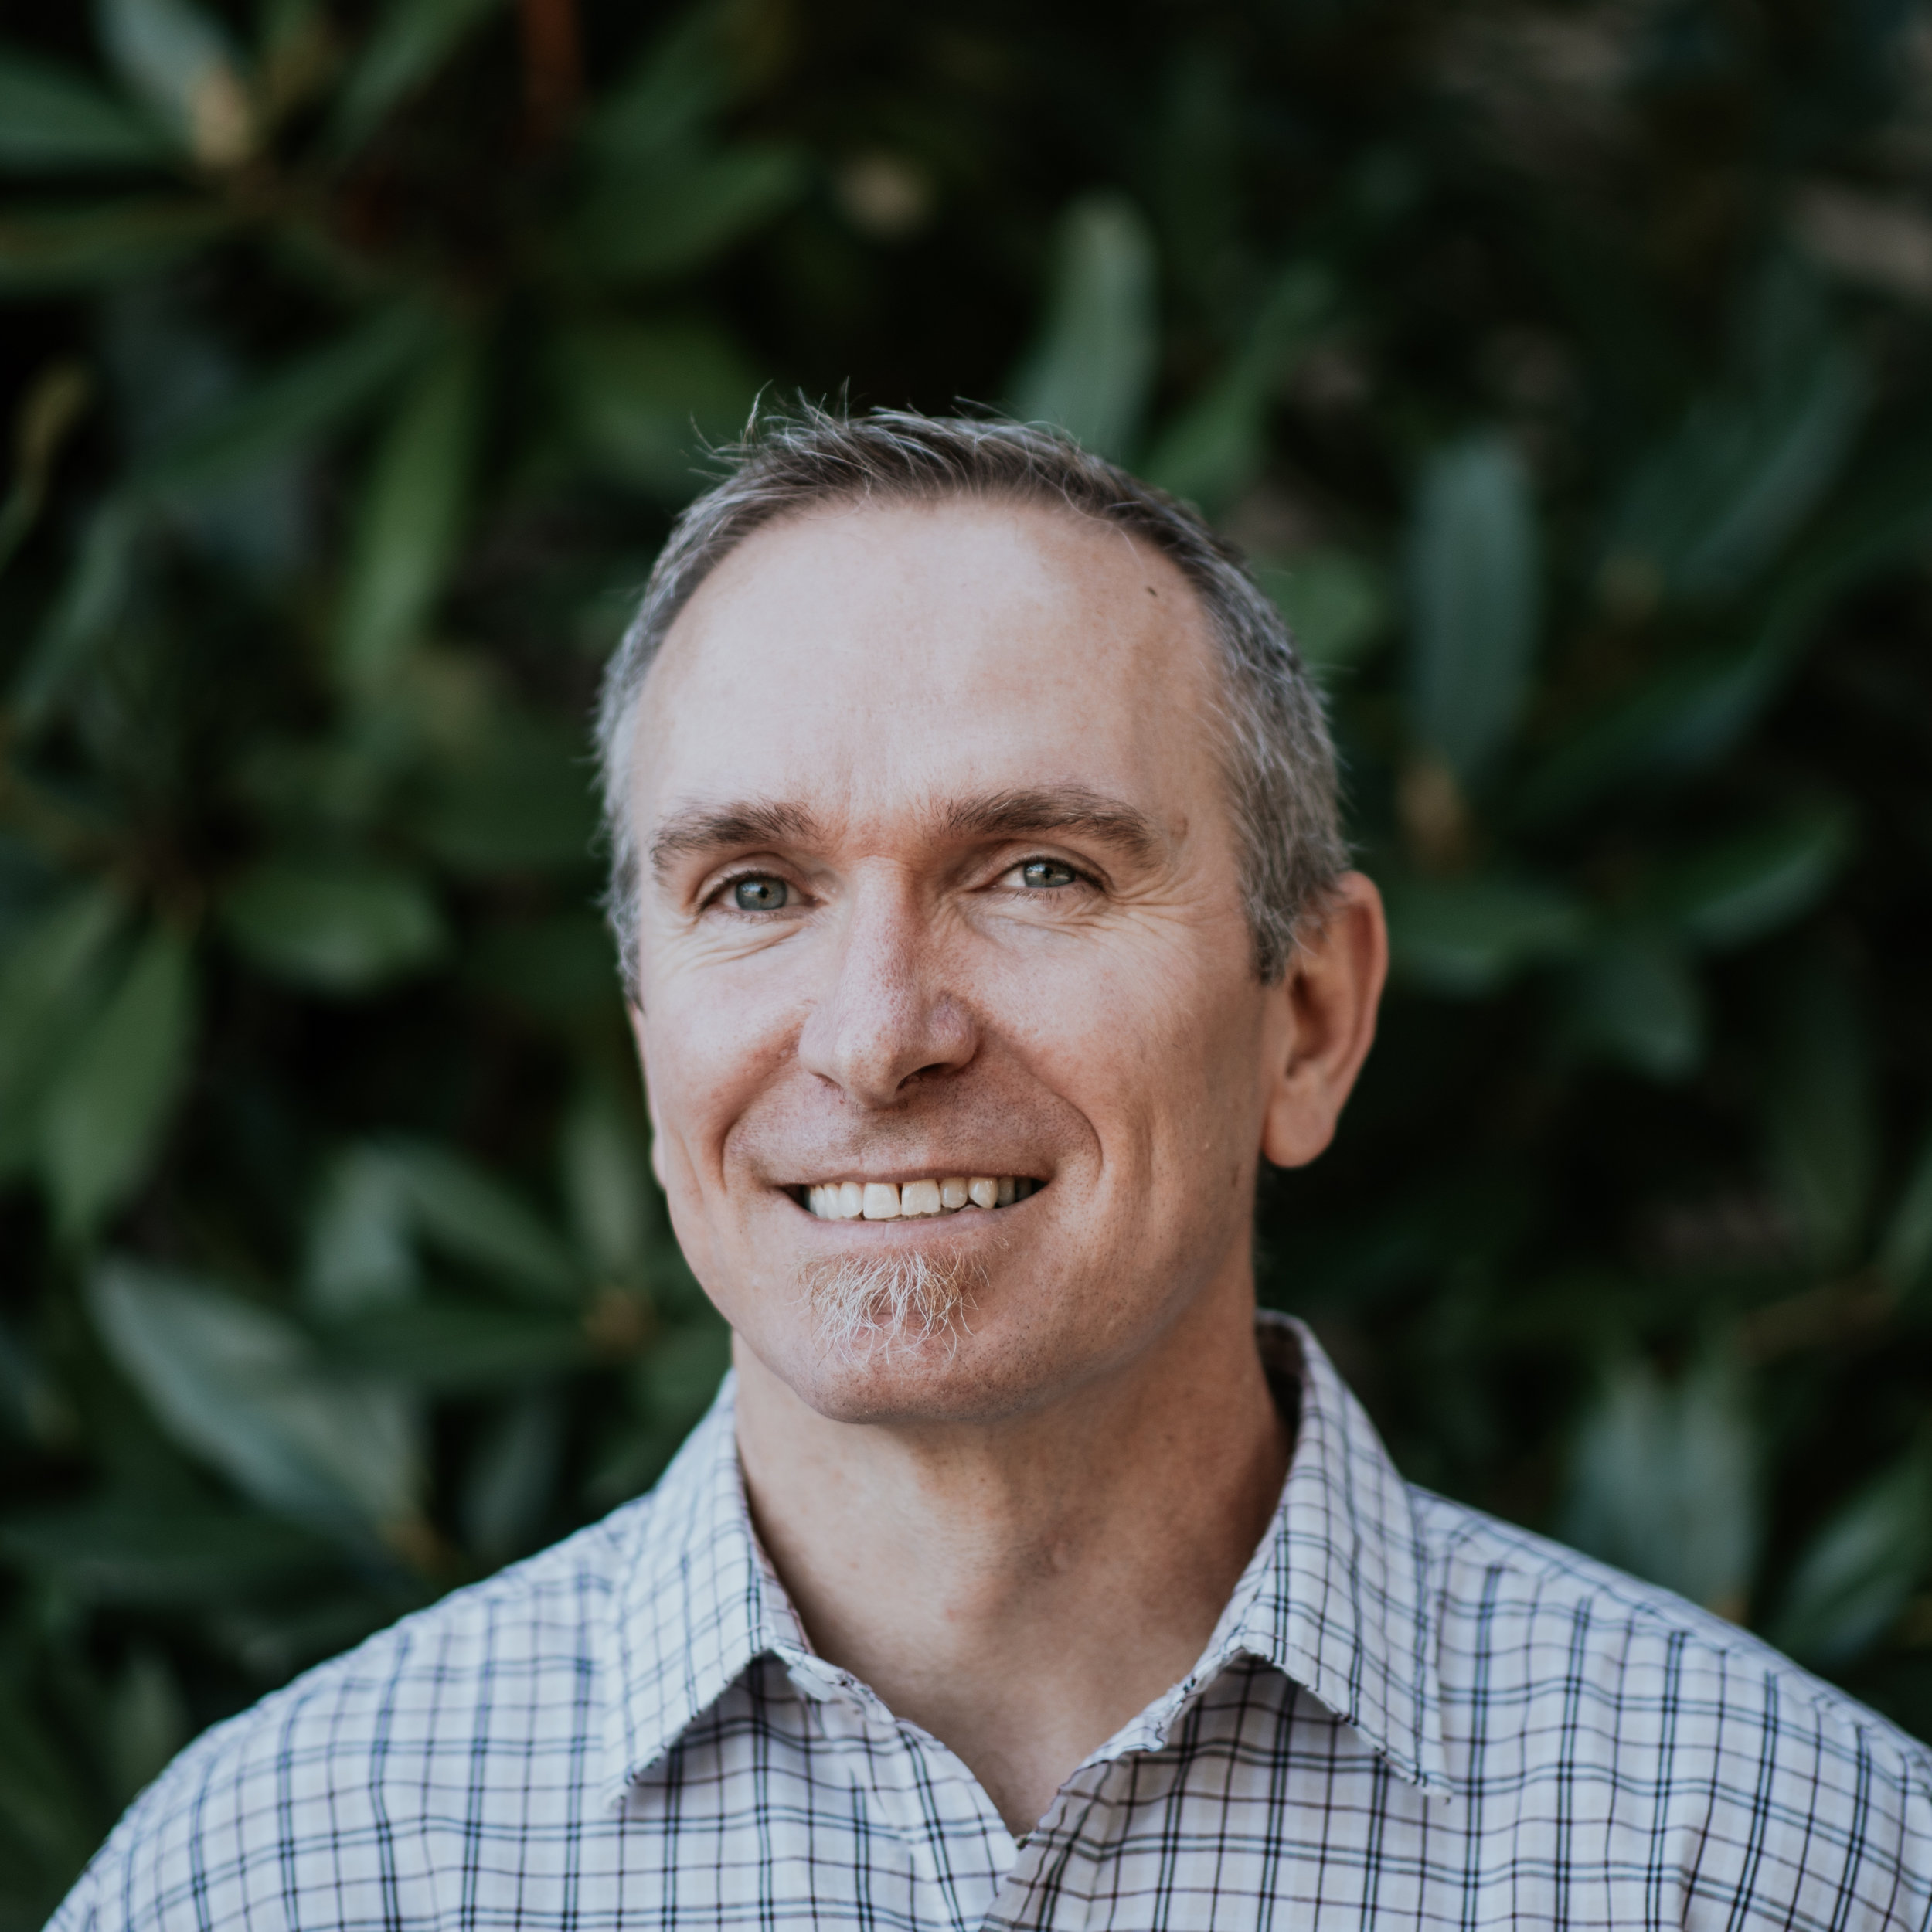 Alford Deeley  Roger J. Stronstad Chair of Biblical Theology Assistant Professor  Telephone:  (604) 851-7236  Campus Local: 7236 Email:  biblicaltheology@summitpacific.ca  Email:  conferences@summitpacific.ca  Email:  ajdeeley@summitpacific.ca